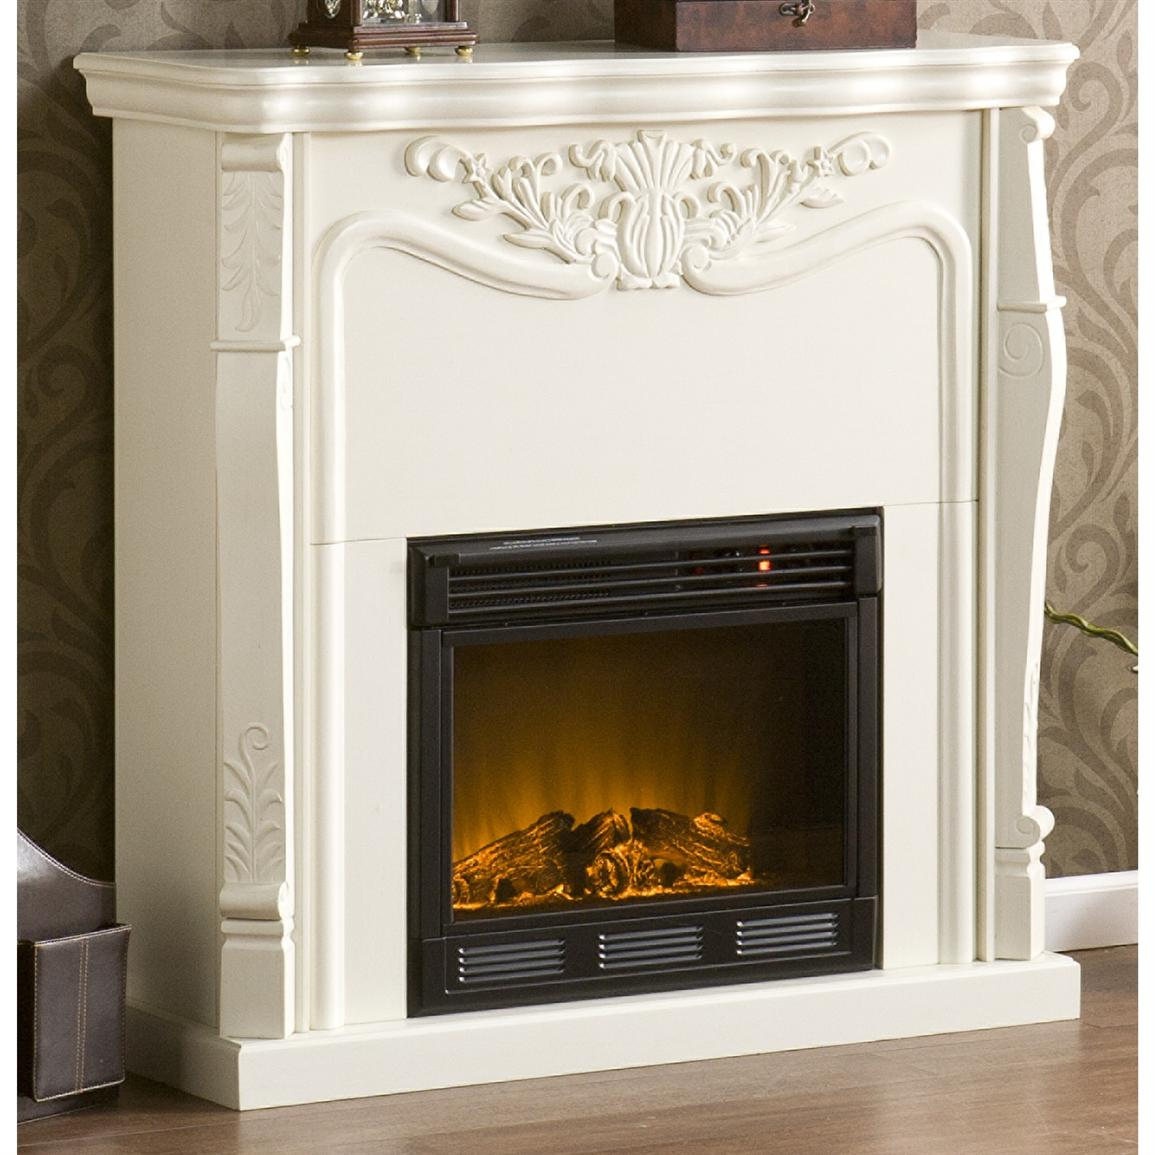 southern enterprises inc raphael electric fireplace 200936 fireplaces at sportsman 39 s guide